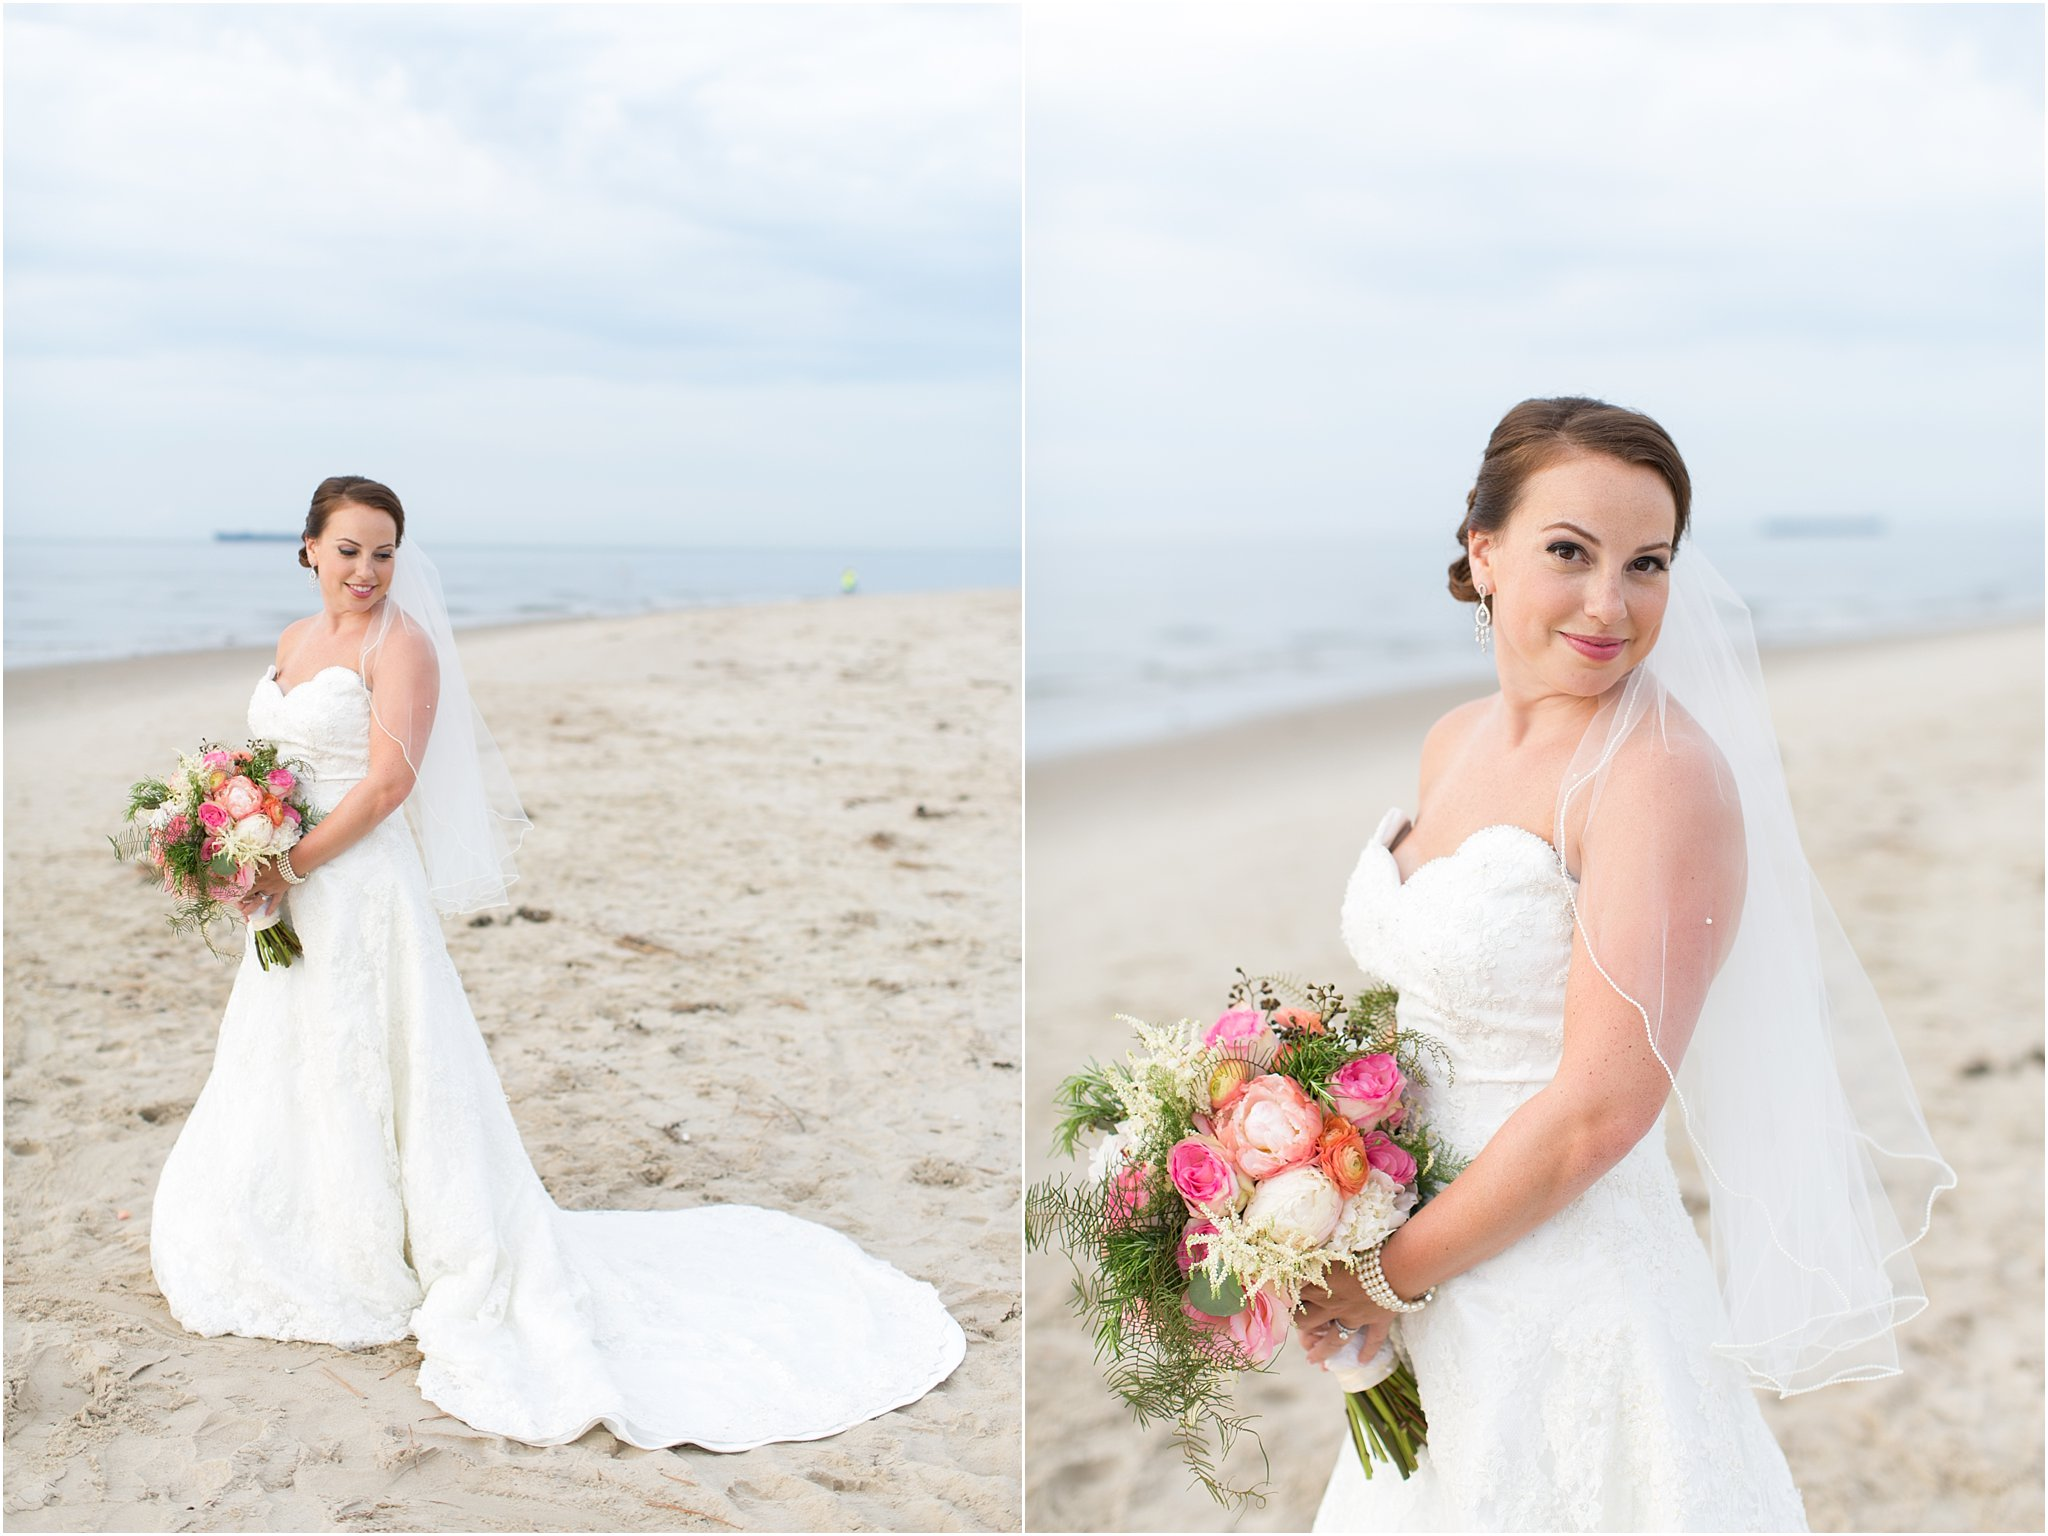 jessica_ryan_photography_wedding_photography_virginiabeach_virginia_candid_authentic_wedding_portraits_marina_shores_yacht_club_chesapeake_bay_1875